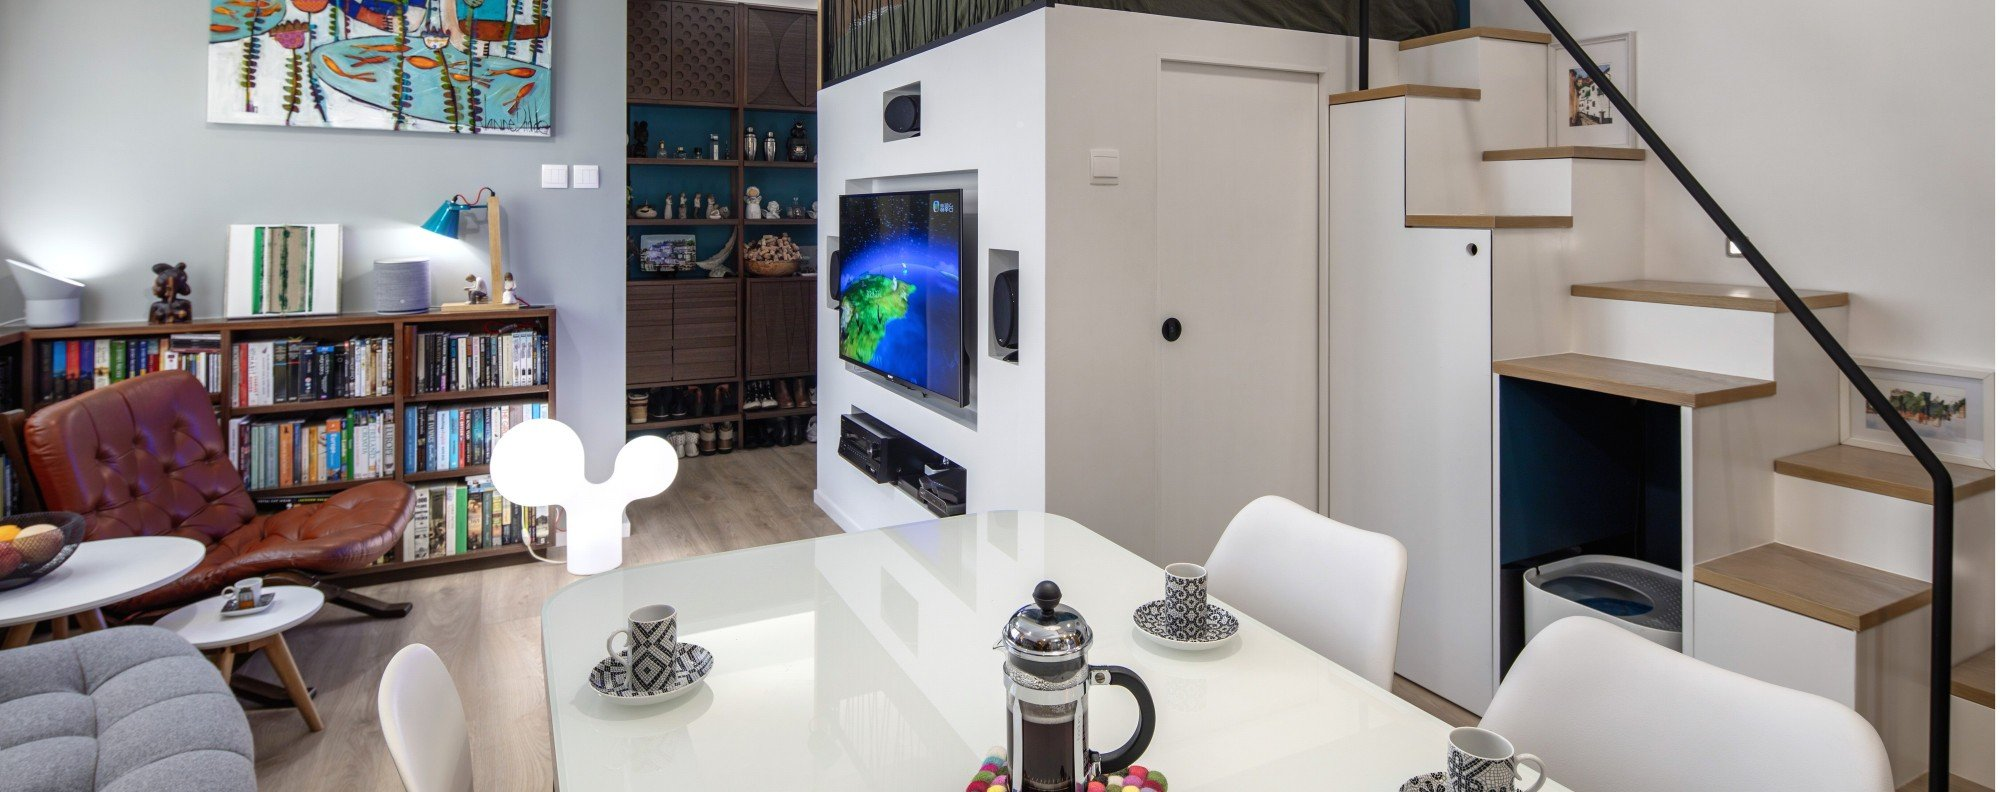 Anne Choy's 300 sq ft Wan Chai micro flat, designed by Mister Glory. Picture: ohn Butlin